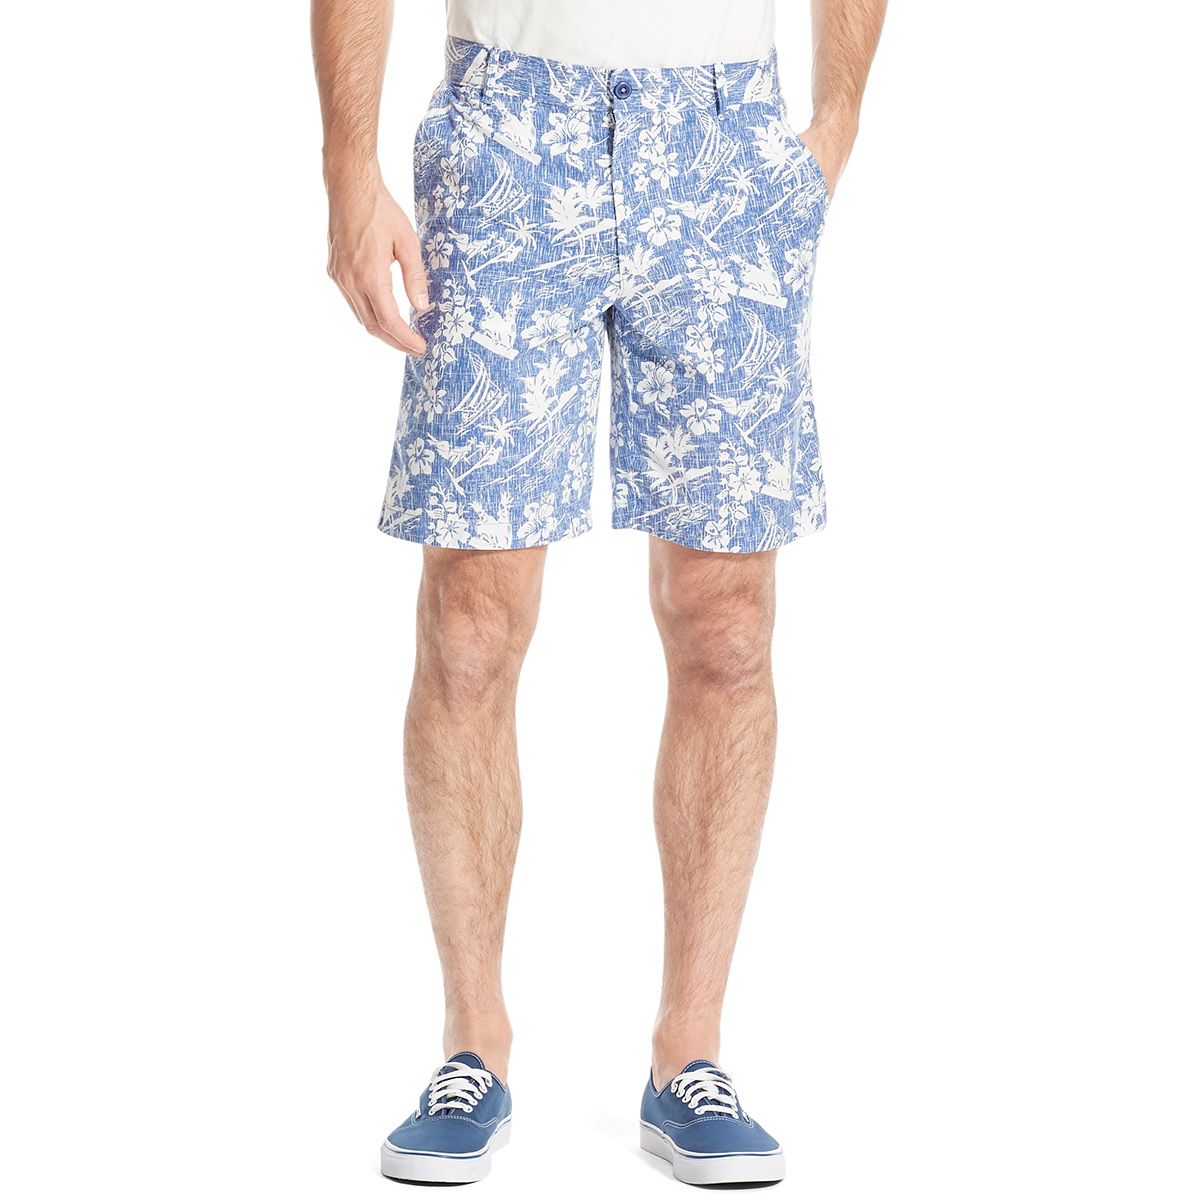 Izod Men's Saltwater Stretch Shorts - Blue, 34